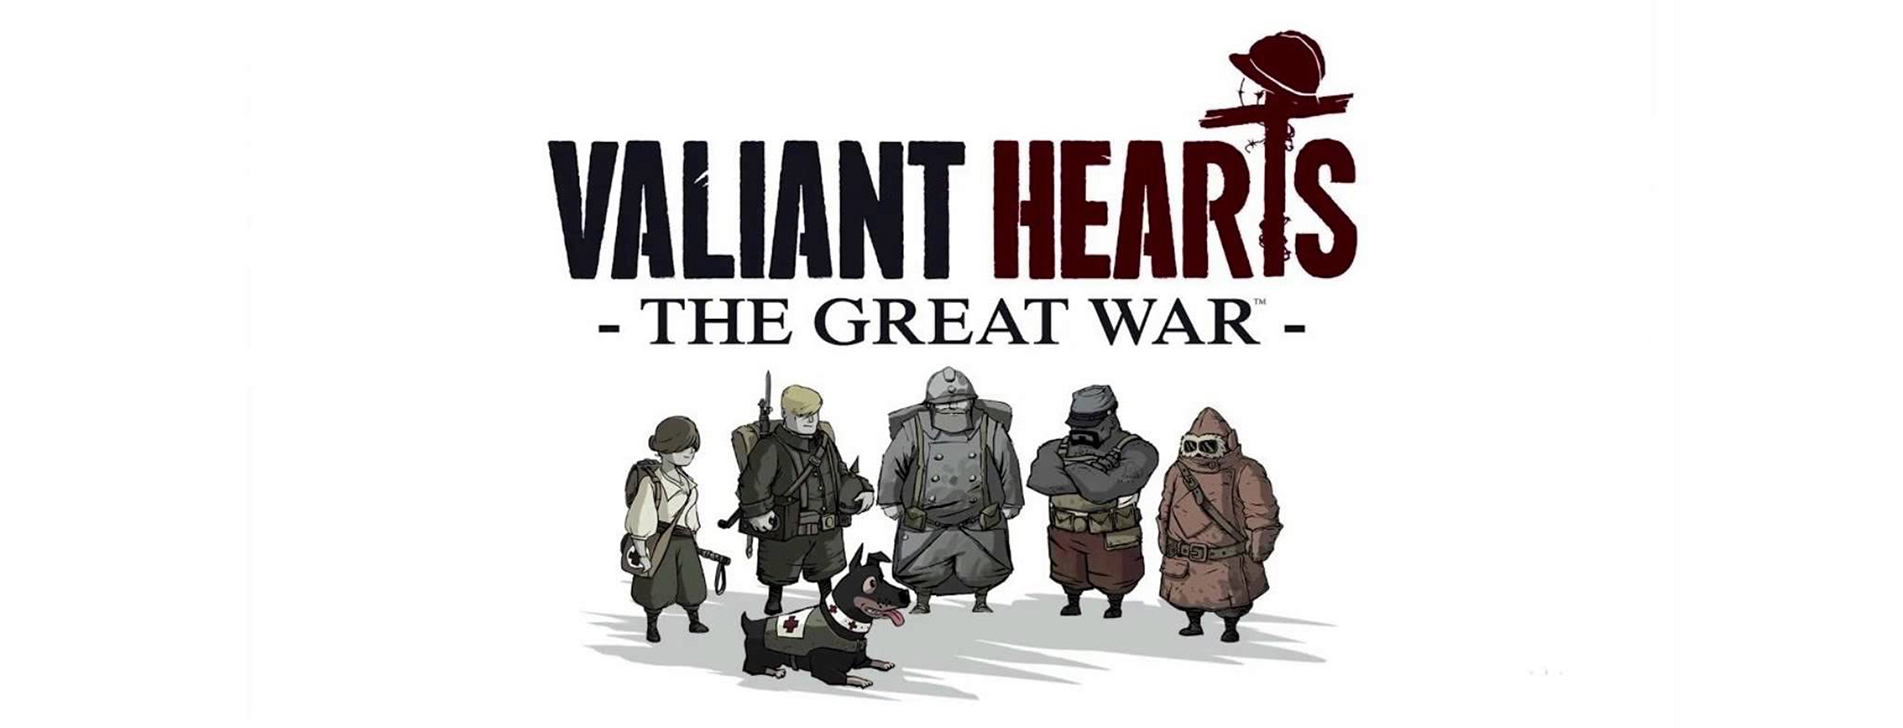 VALIANT HEARTS: THE GREAT WAR LOCALIZATION, TESTING, AND VOICEOVER